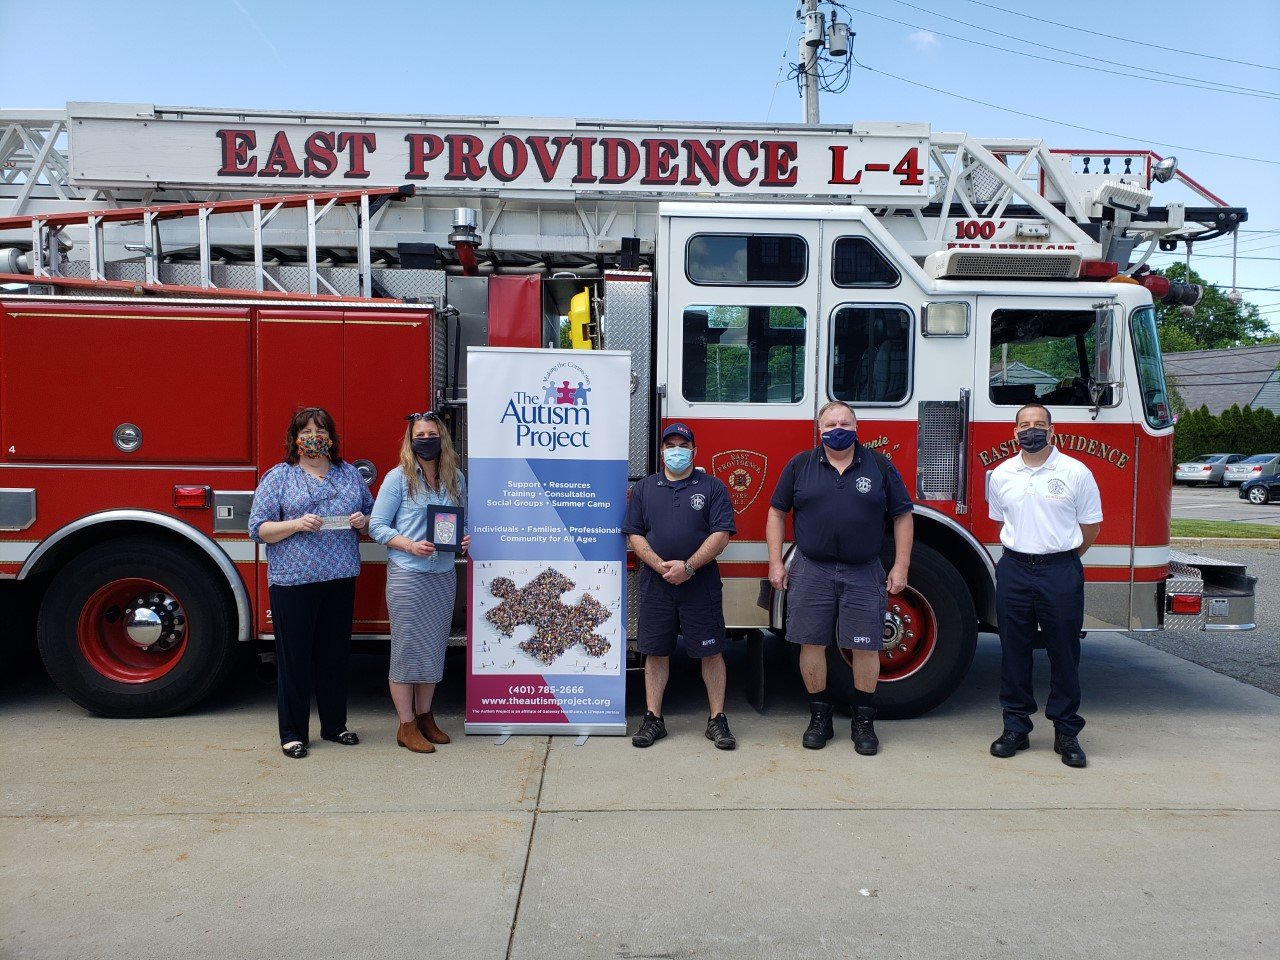 Joanne Quinn, executive director, Autism Project; Kristen Steiner, senior development manager, Autism Project; Lt. Carl Godfrin; Capt. Joseph Crowshaw and Battalion Chief Frederick MacDonald gather for the donation presentation.